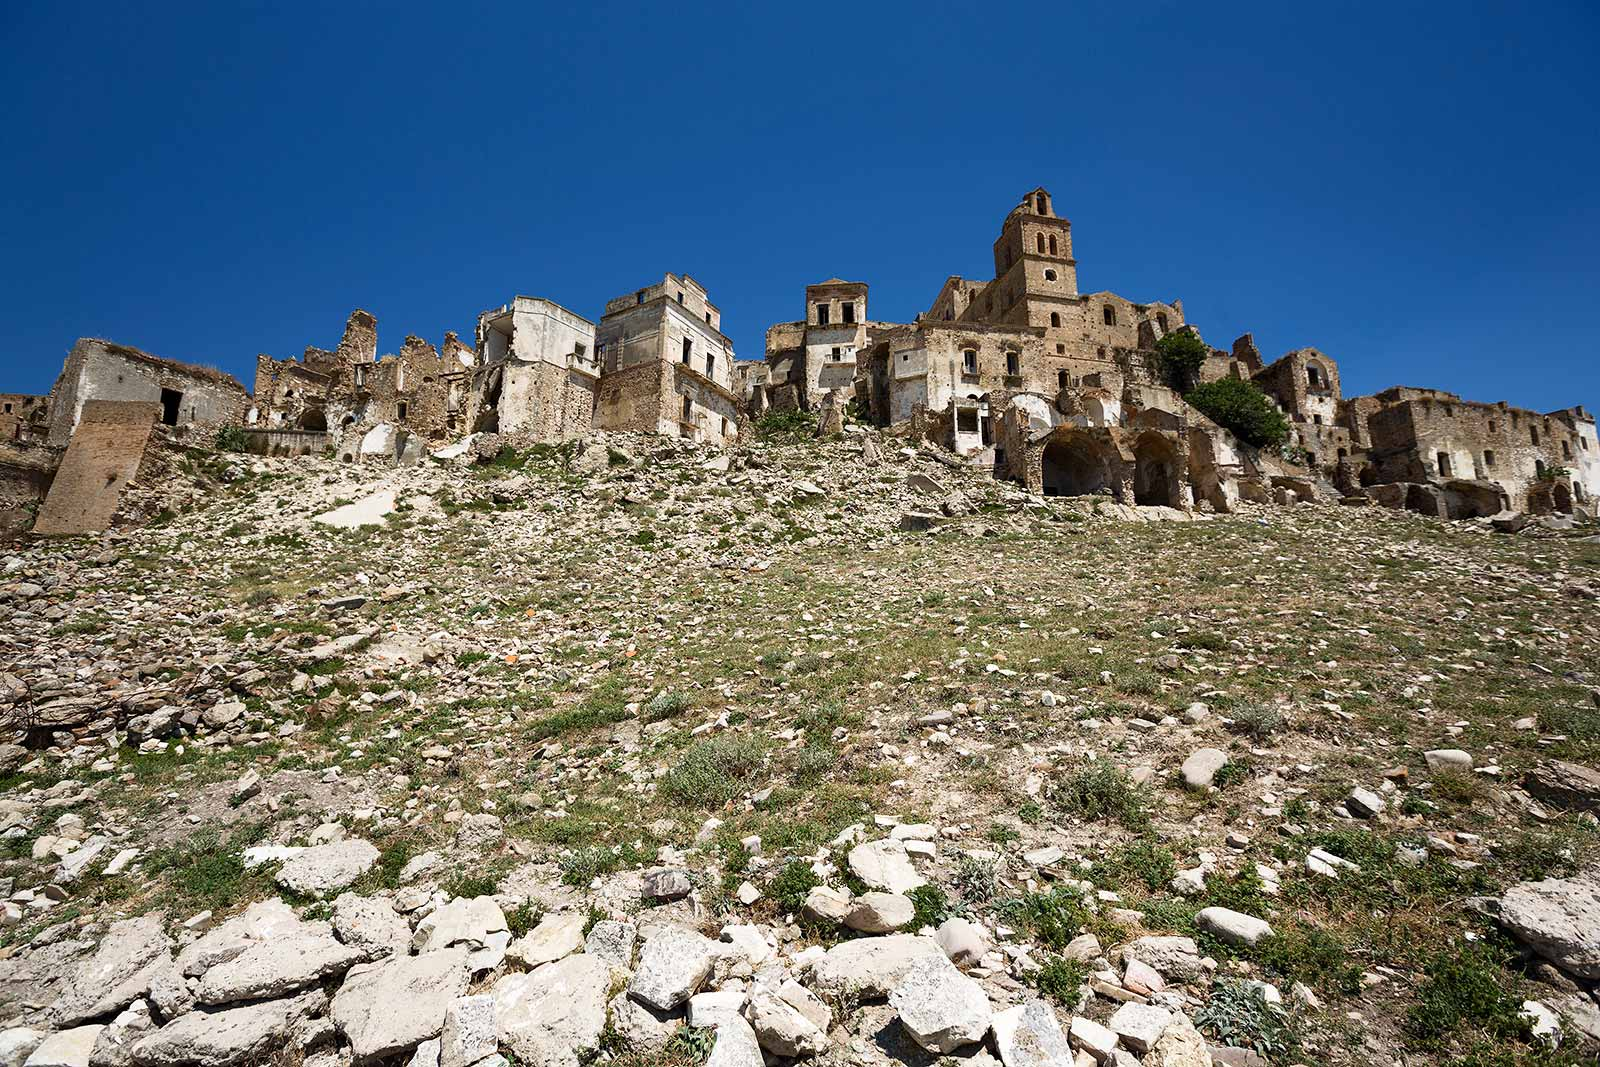 It was here that the level of Craco's destruction became more apparent. This part of the town which was built upon the clay and that suffered the worst of the damage.